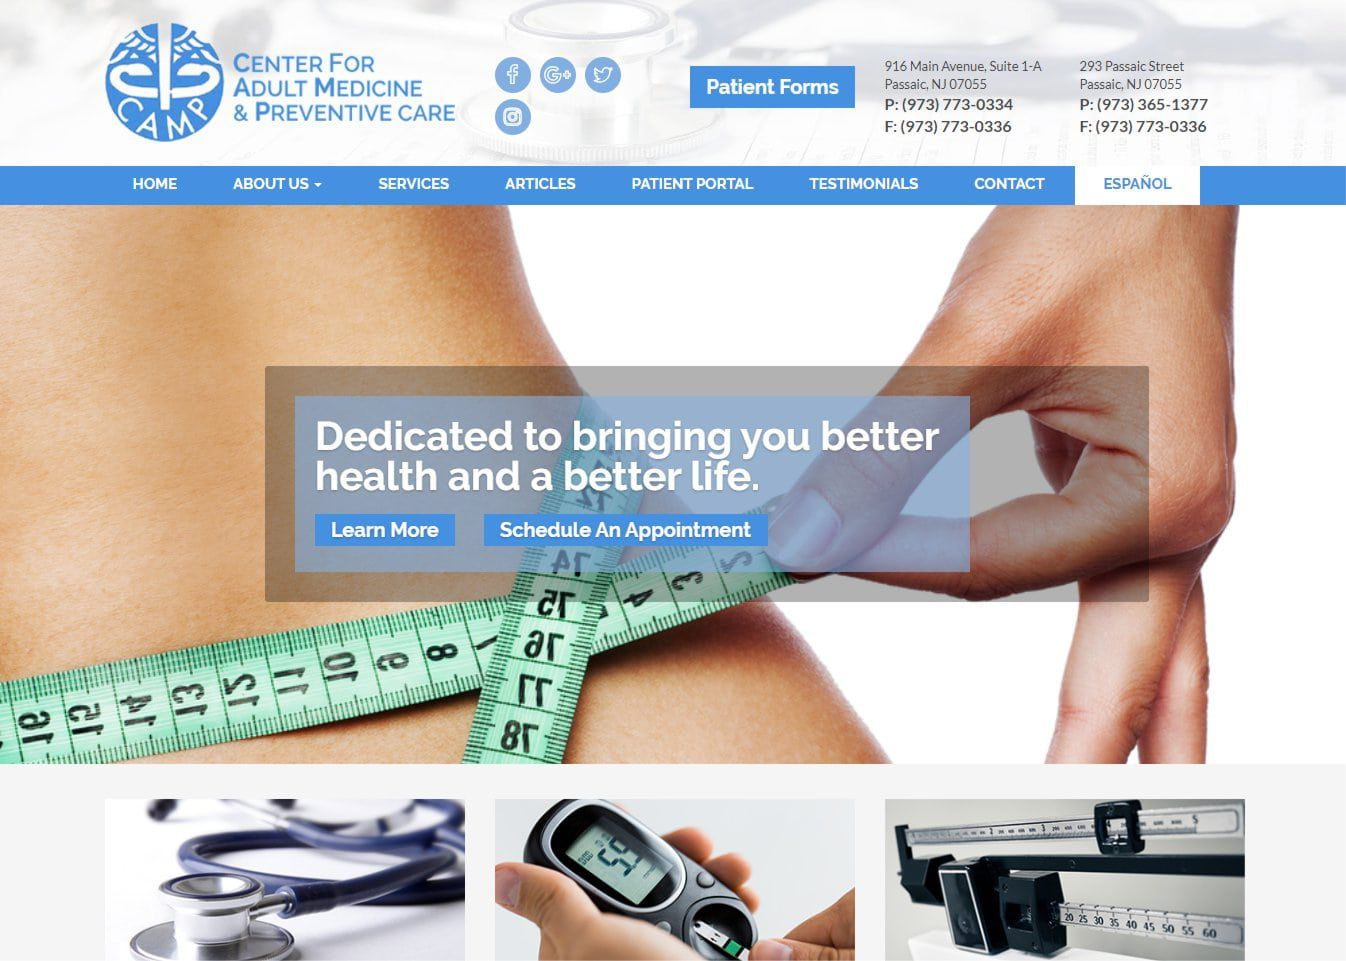 campmedicine.org screenshot showing homepage of Center for Adult Medicine & Preventive Care website